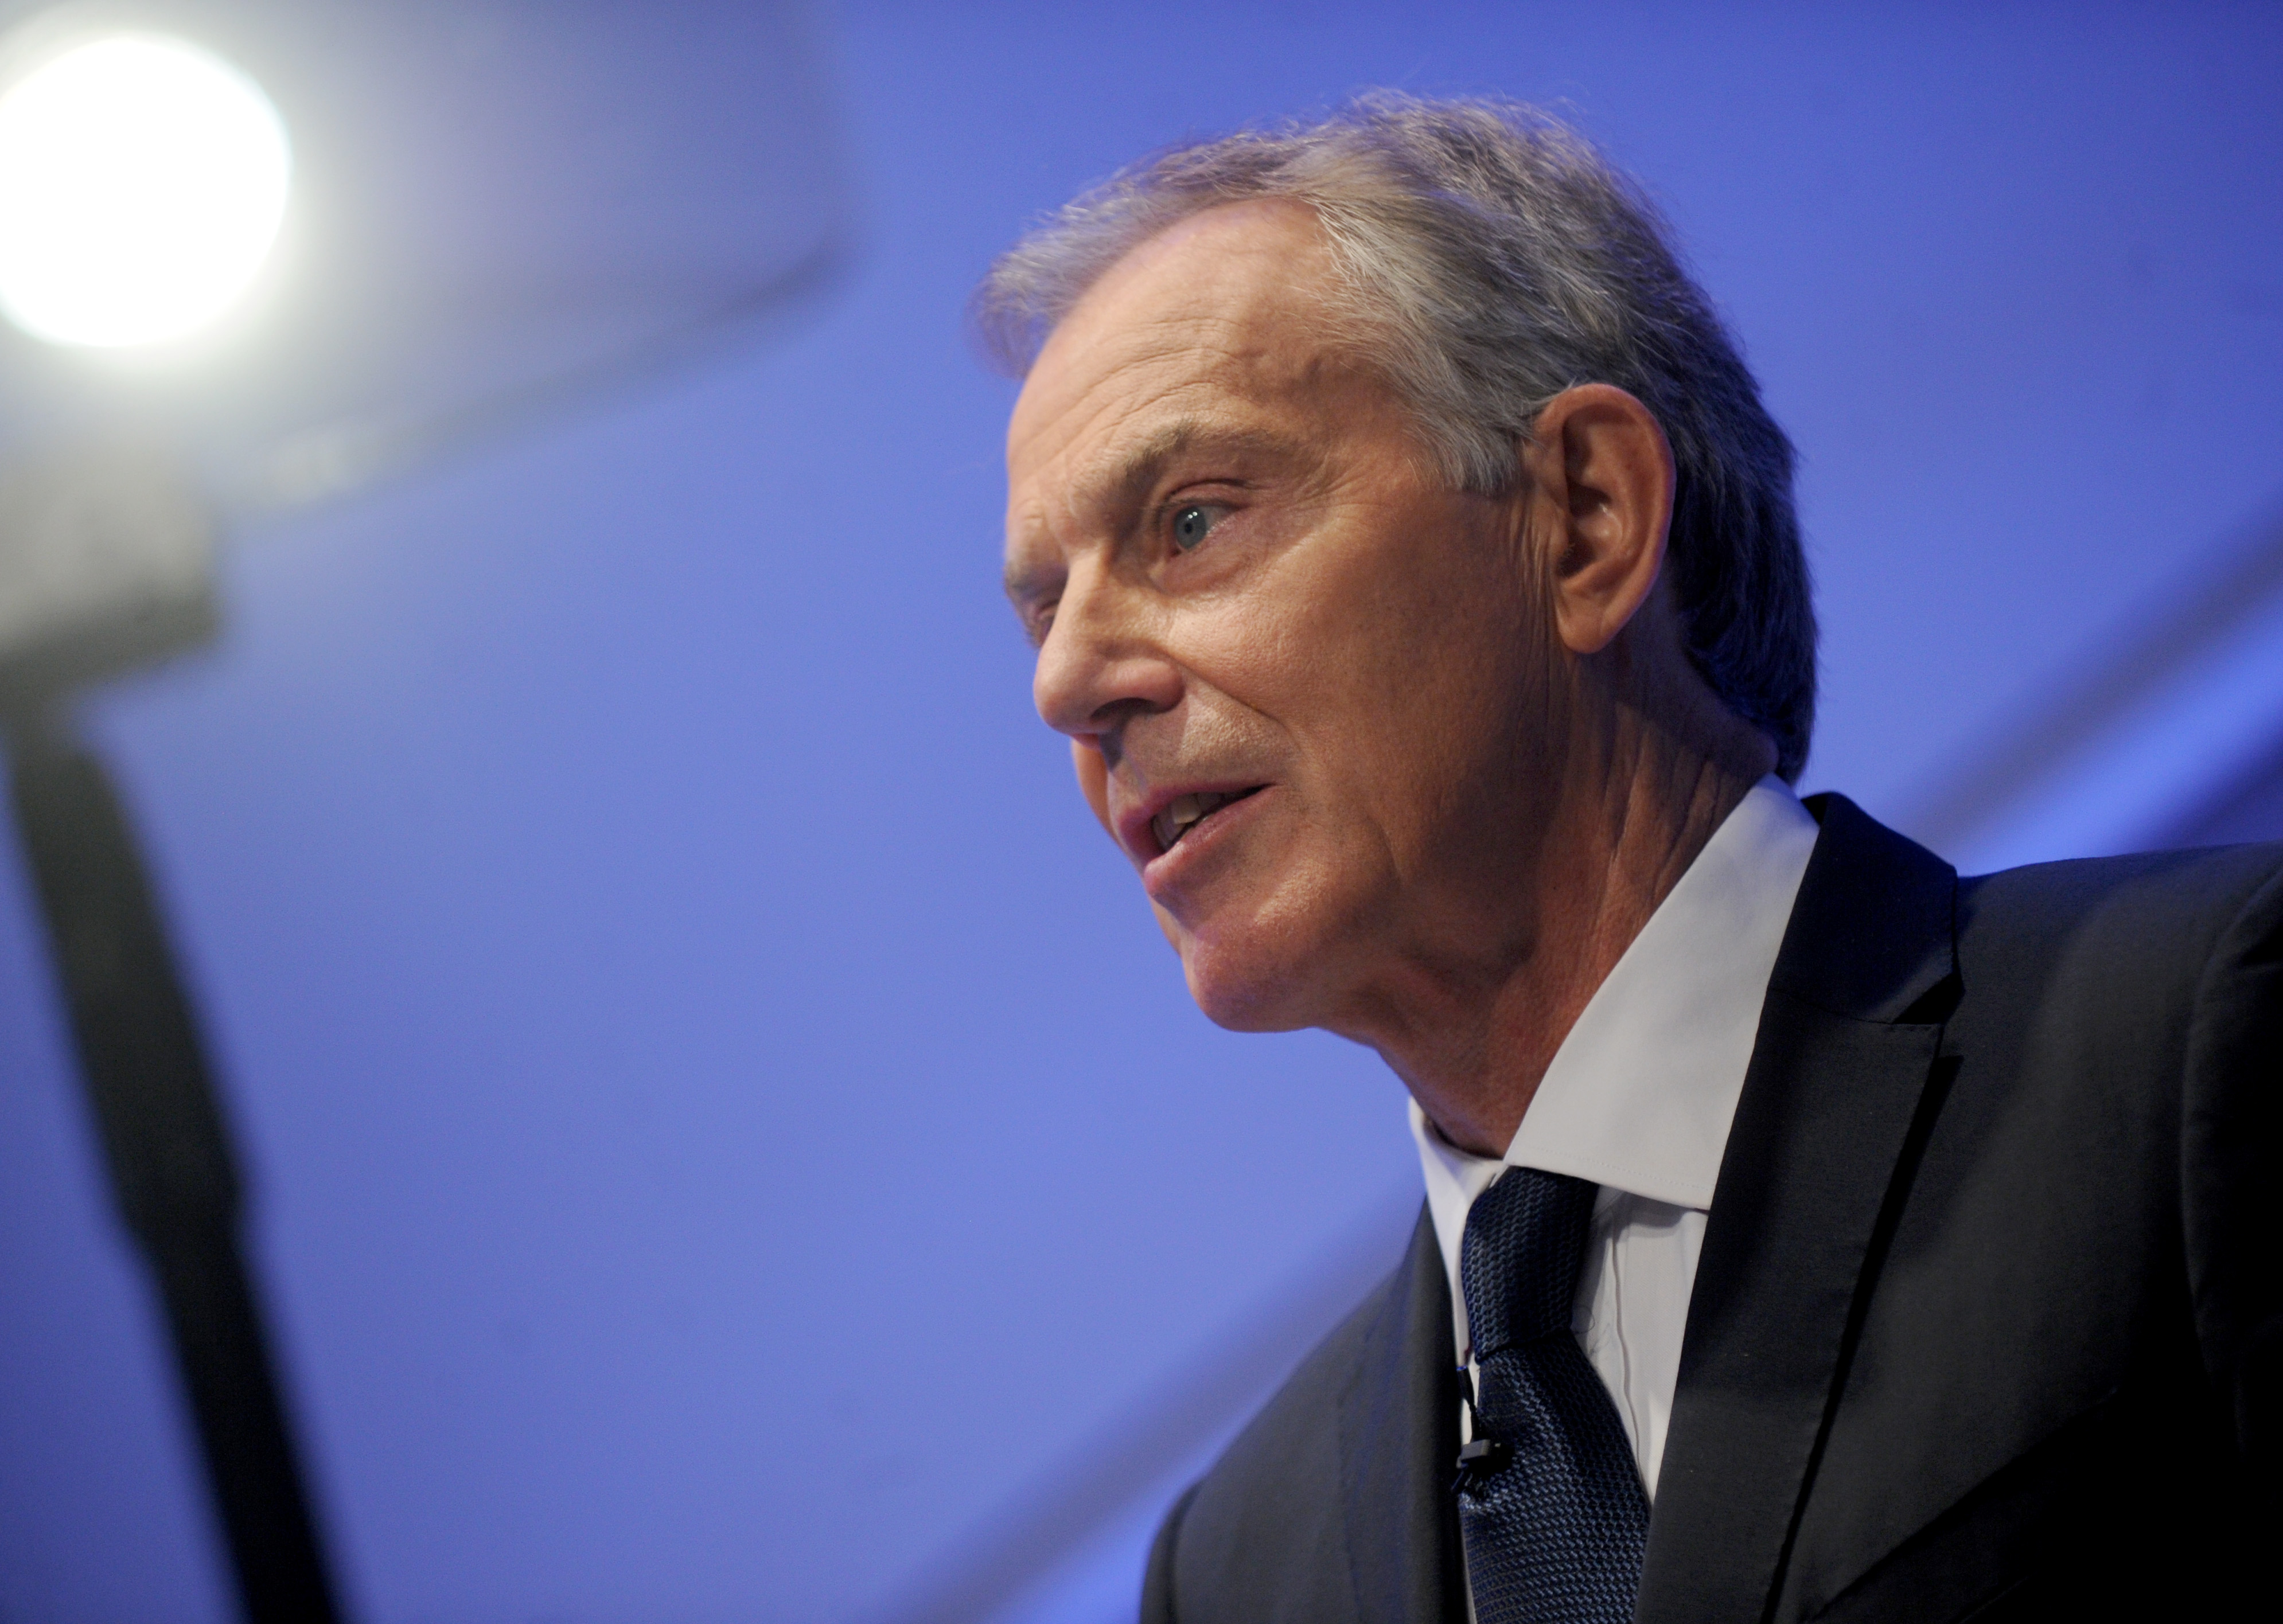 Tony Blair delivers a speech at the National September 11 Memorial Museum Auditorium in New York City on Oct. 6, 2015.